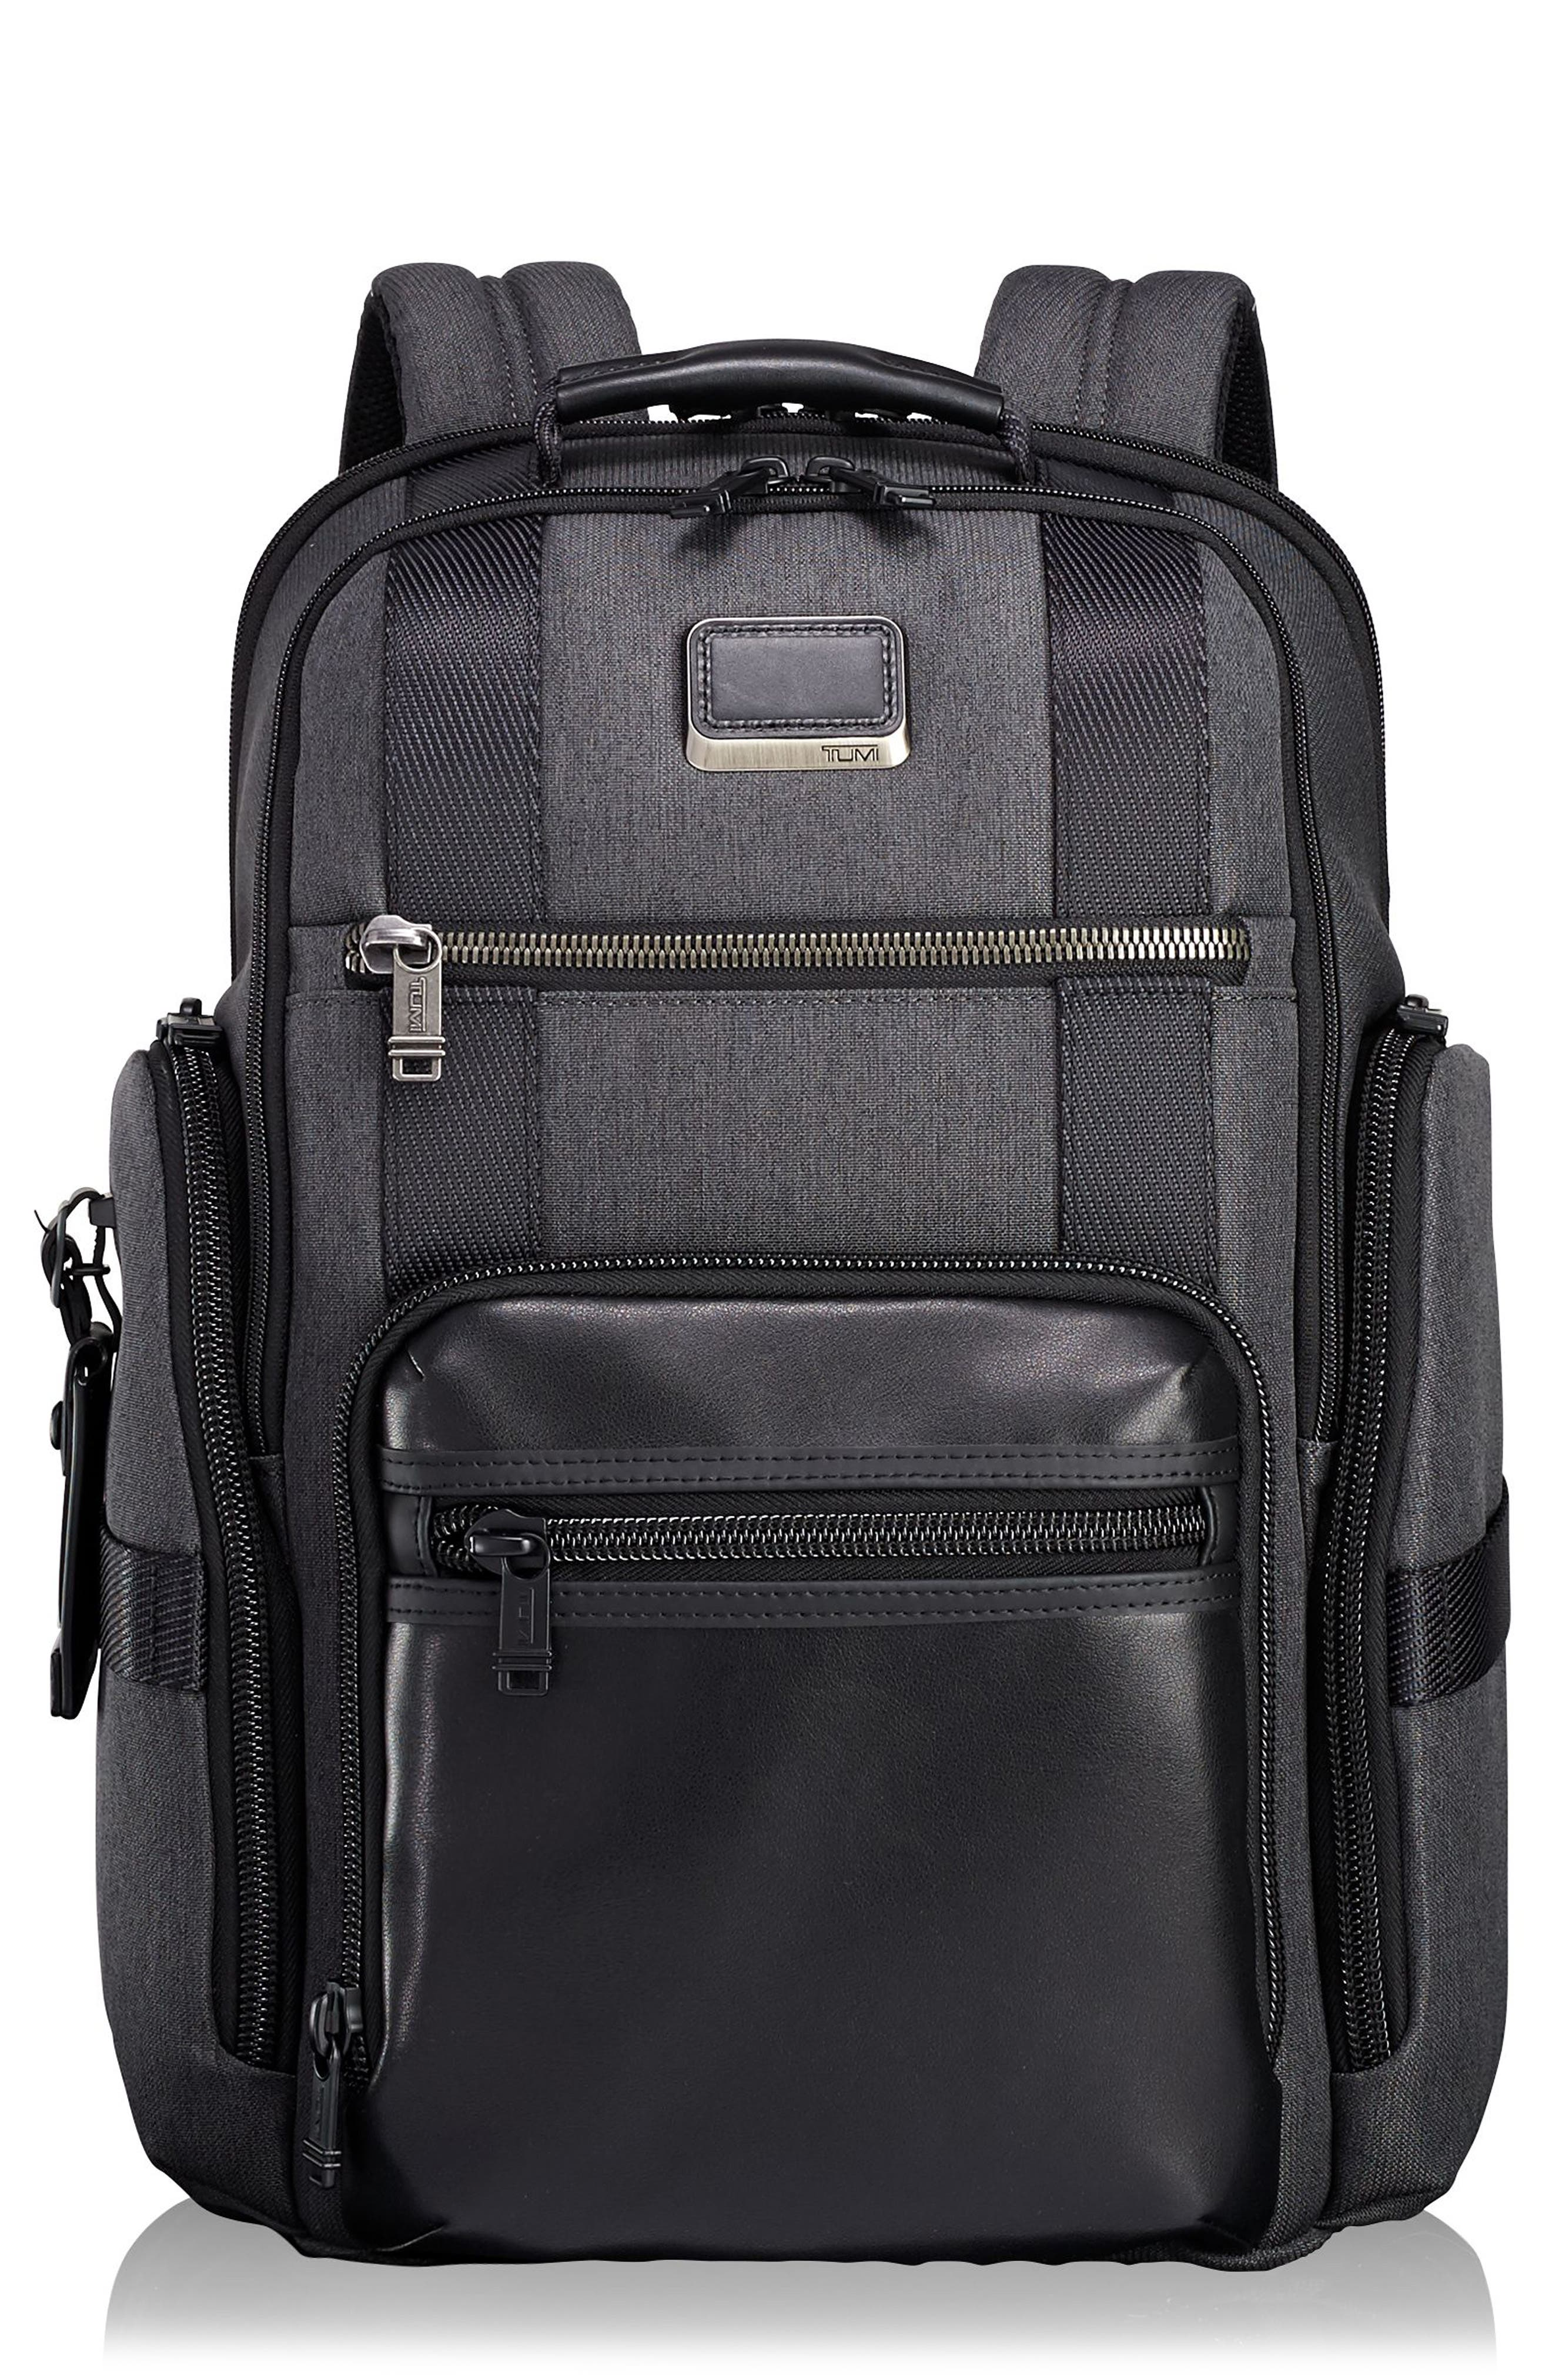 Alpha Bravo - Sheppard Deluxe Backpack,                             Main thumbnail 1, color,                             Anthracite